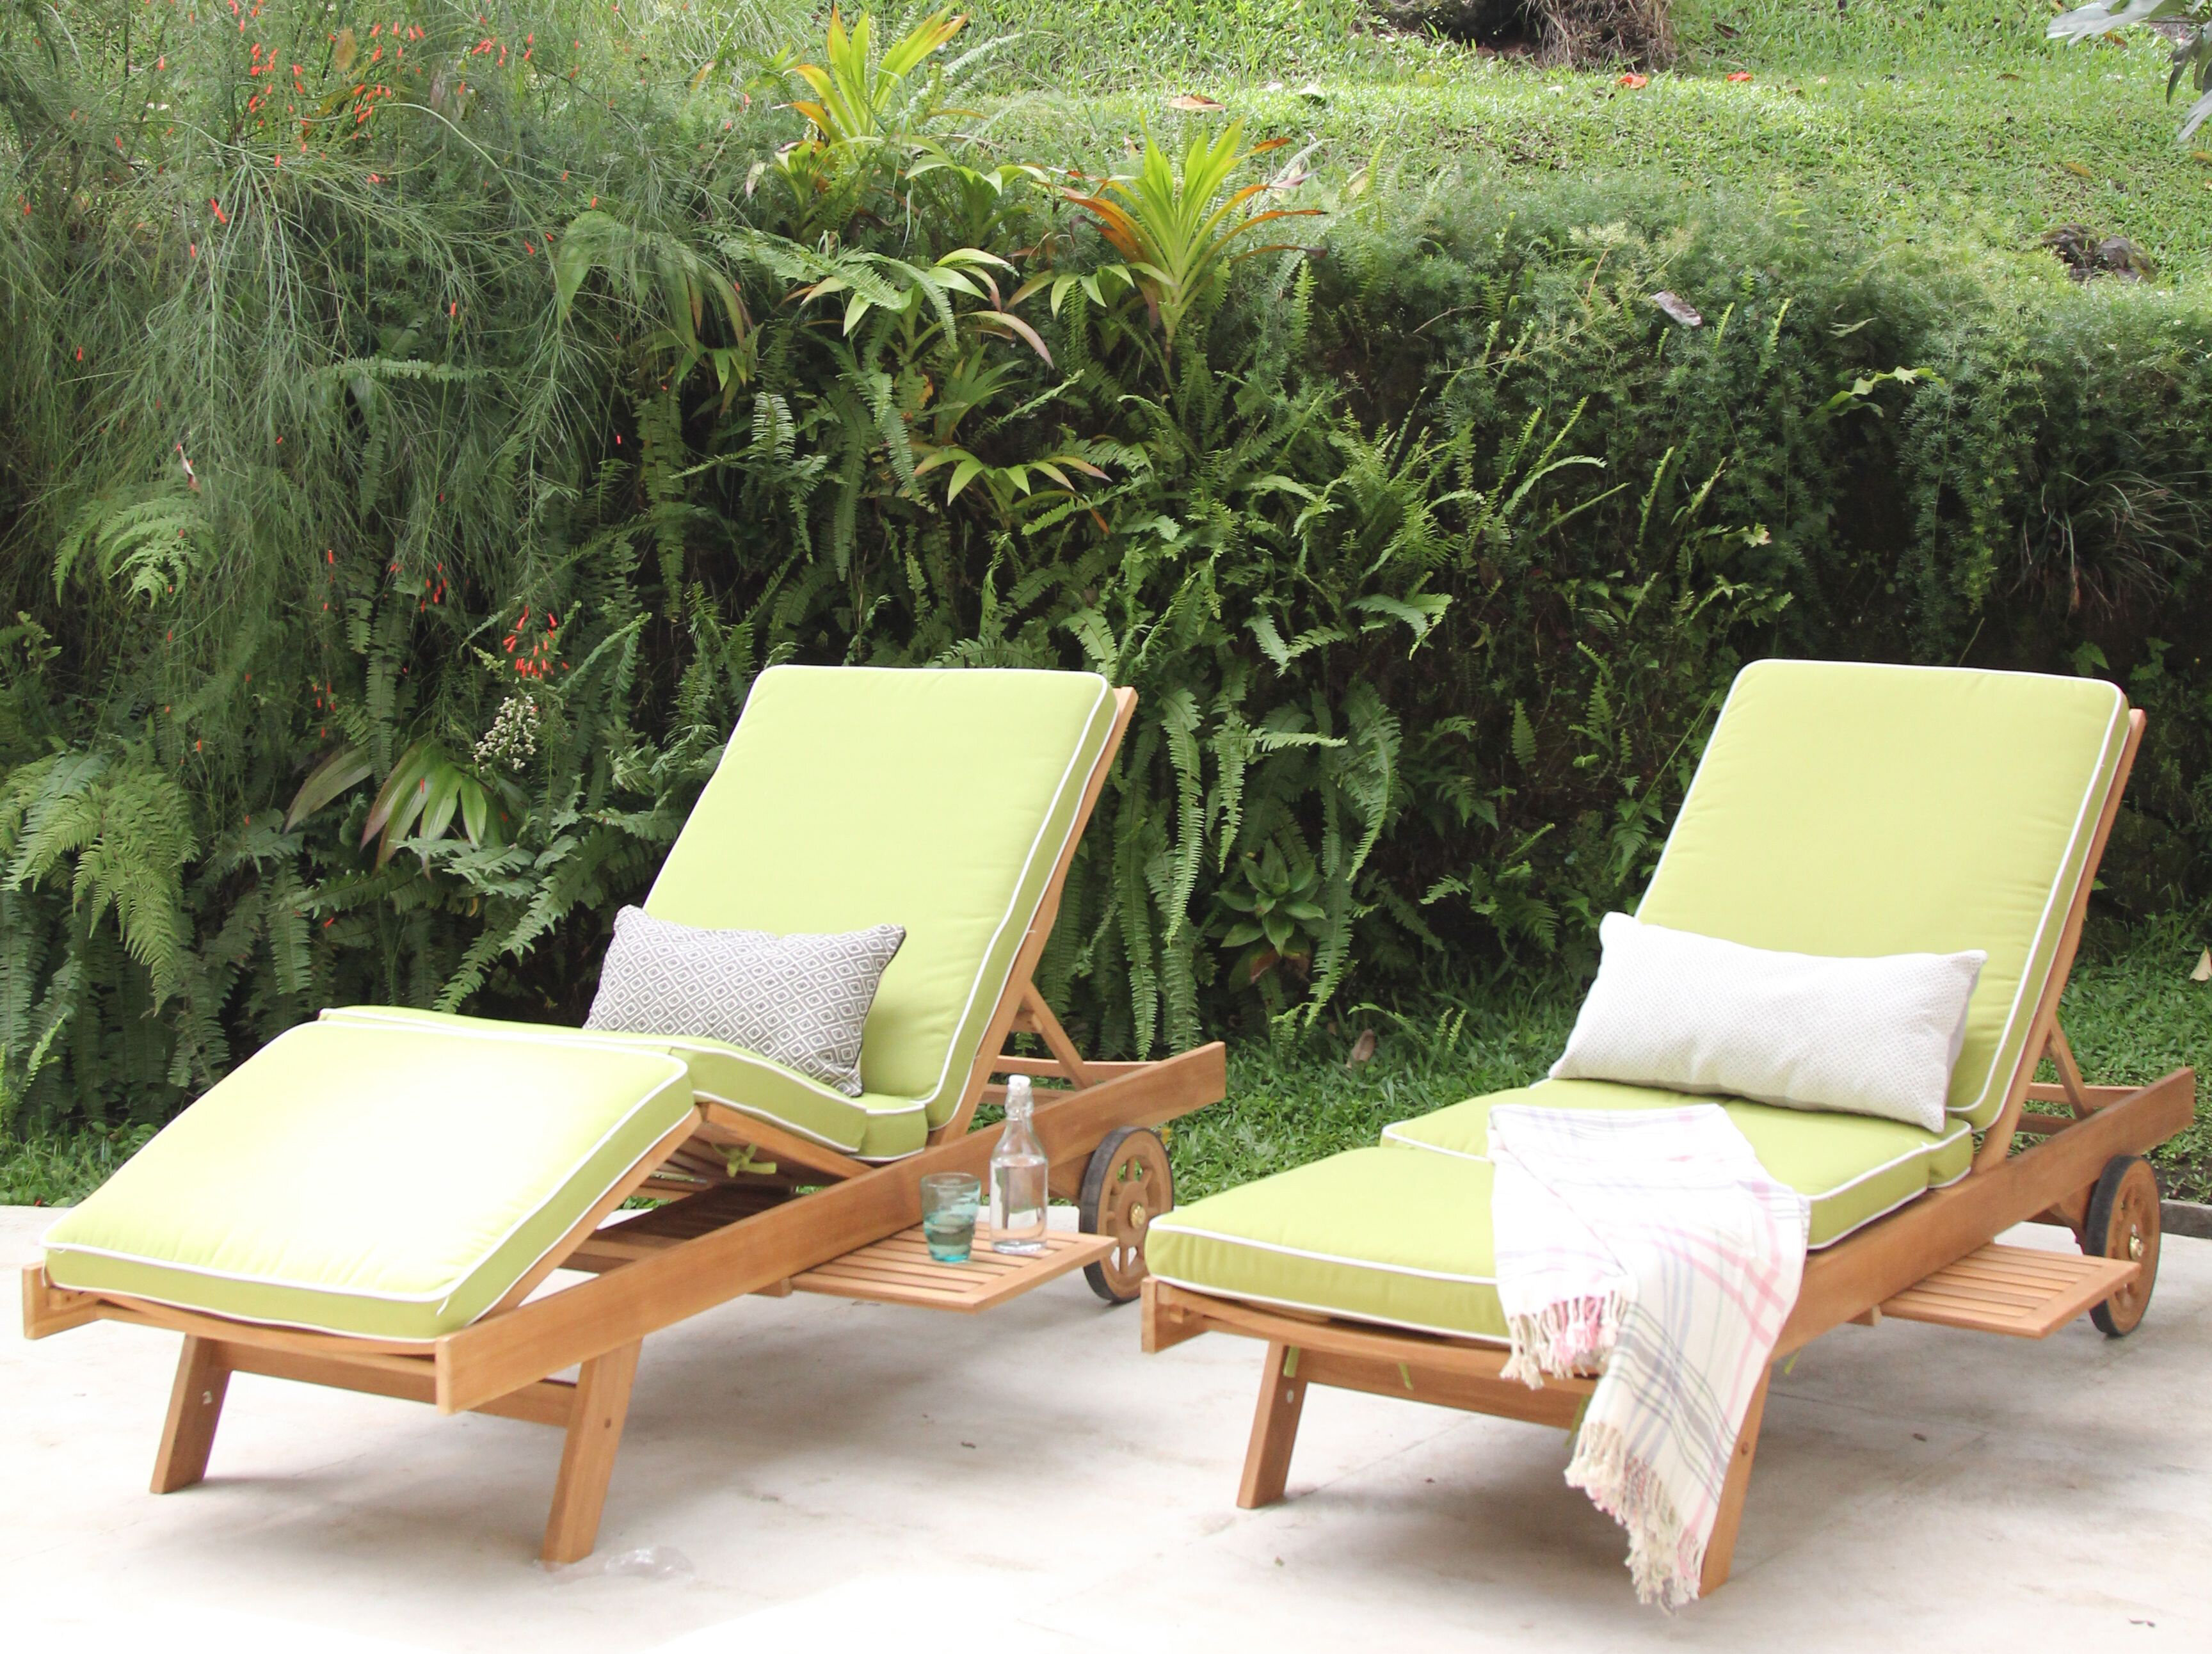 outdoor fascinating ideas furniture clearance replacement seat deep on cus chaise lounge mattress cushion sunbrella using patio fabulous for cushions